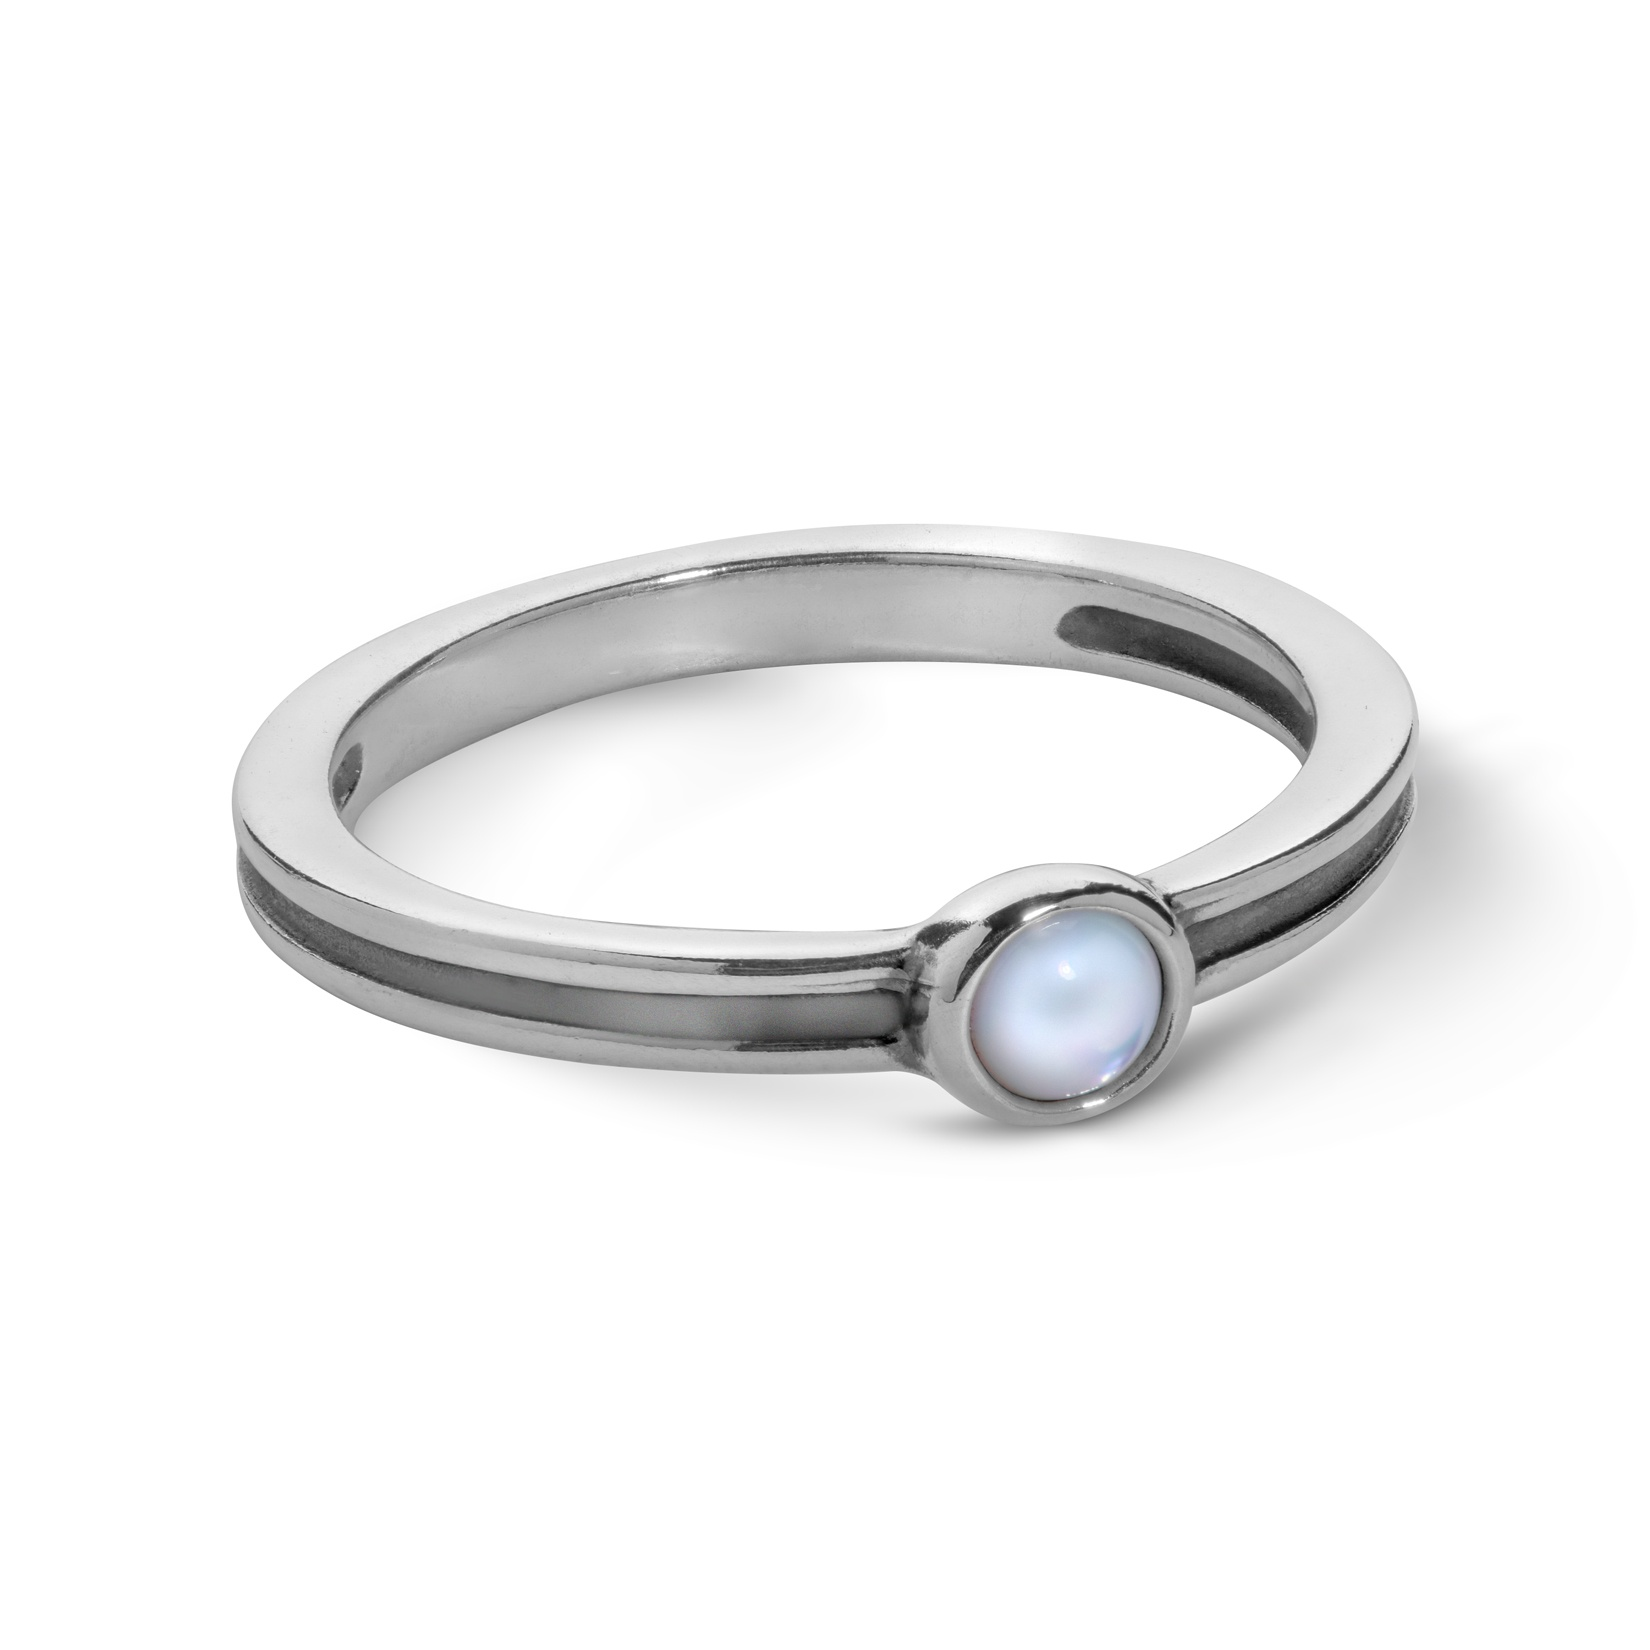 Sterling Silver White Mother of Pearl Gemstone Stackable Ring Size 5 to 10